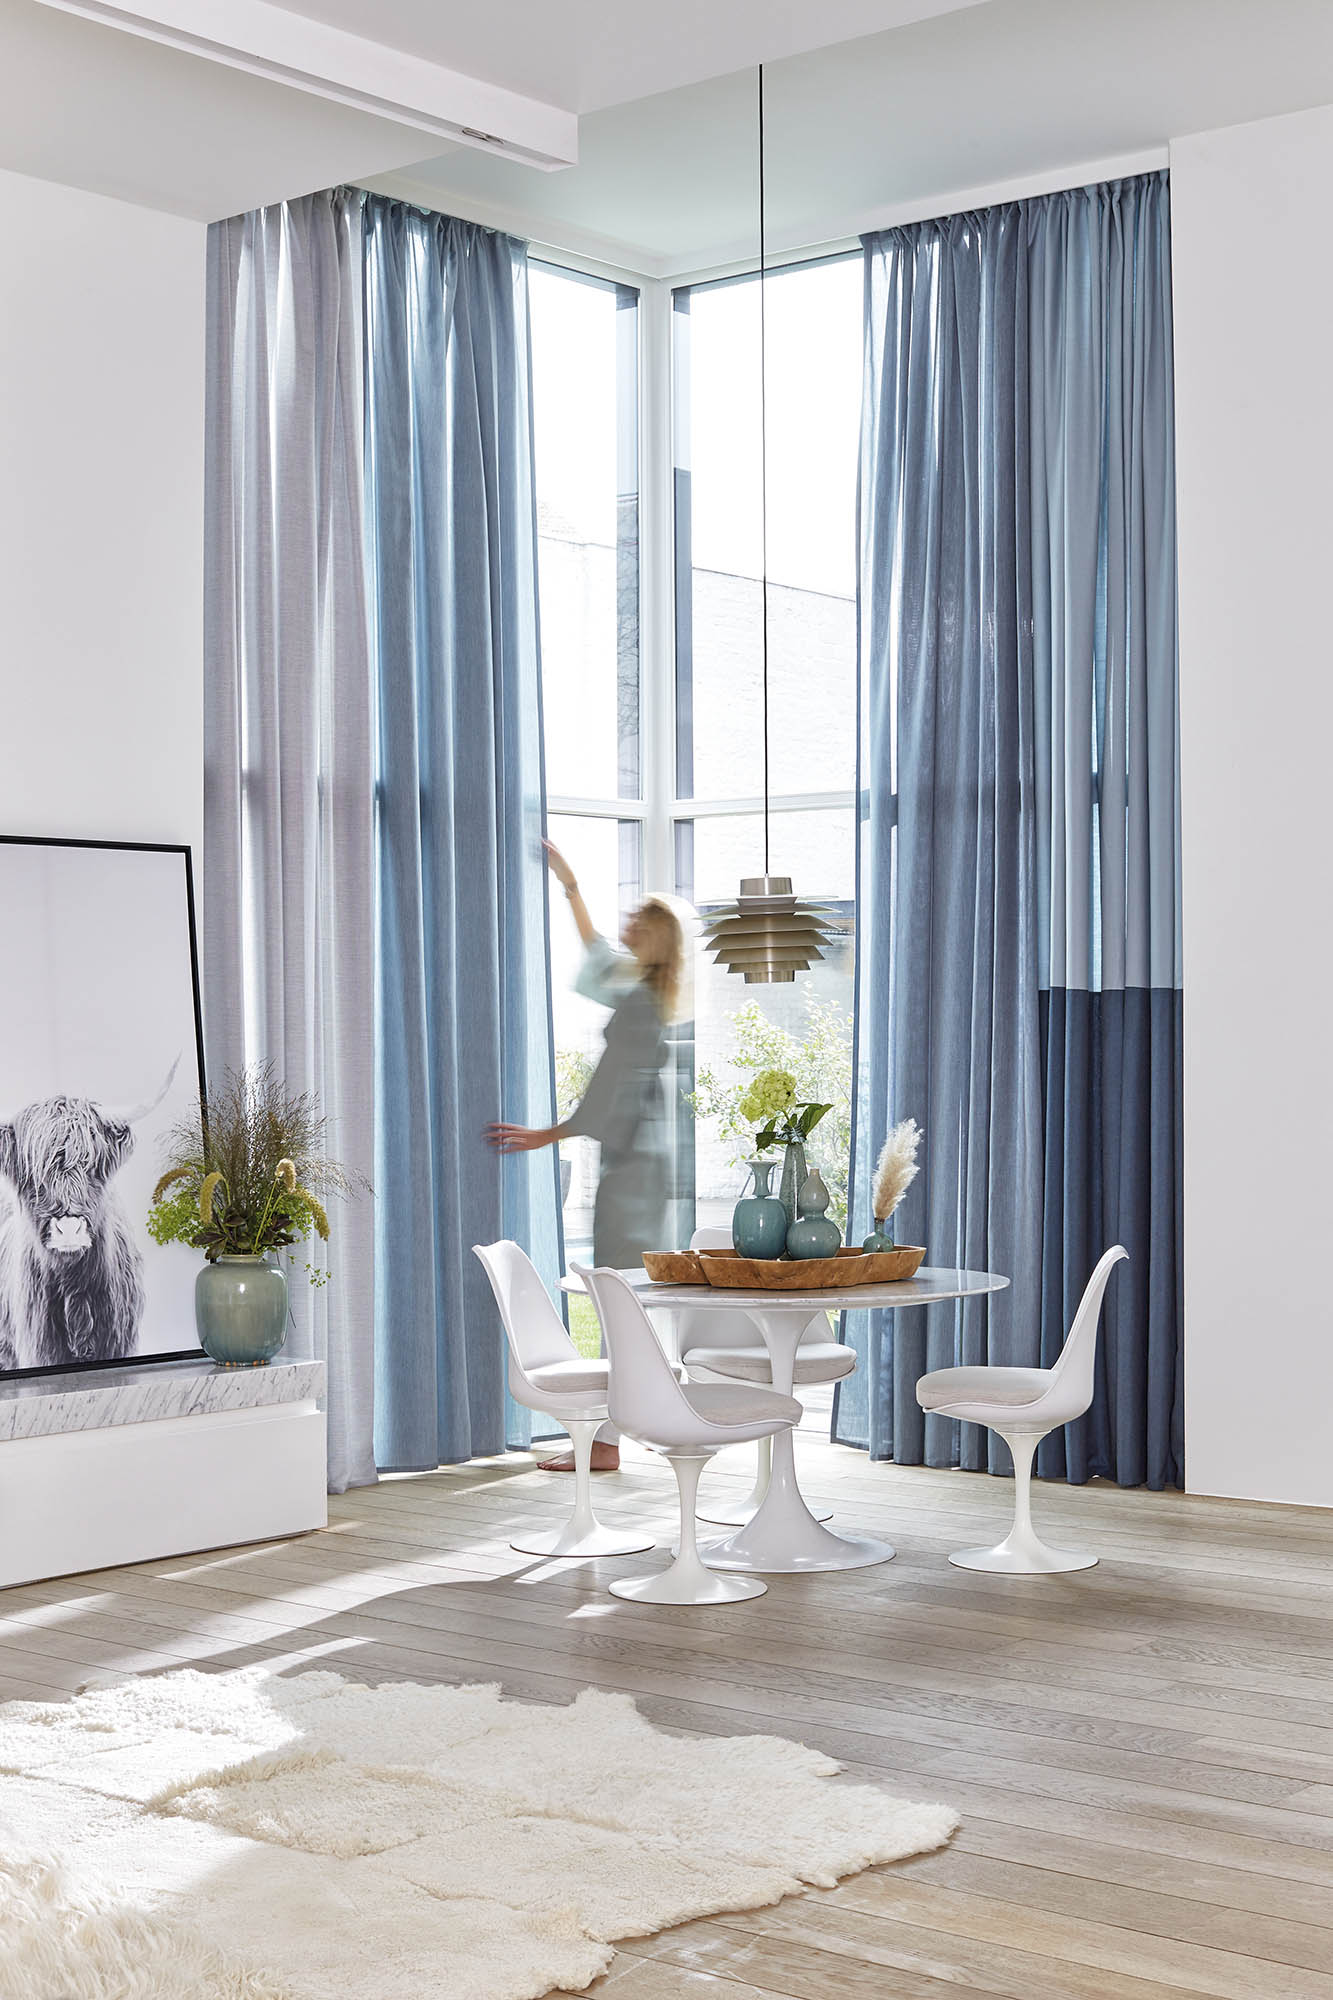 dining room decorated with sunbrella curtains